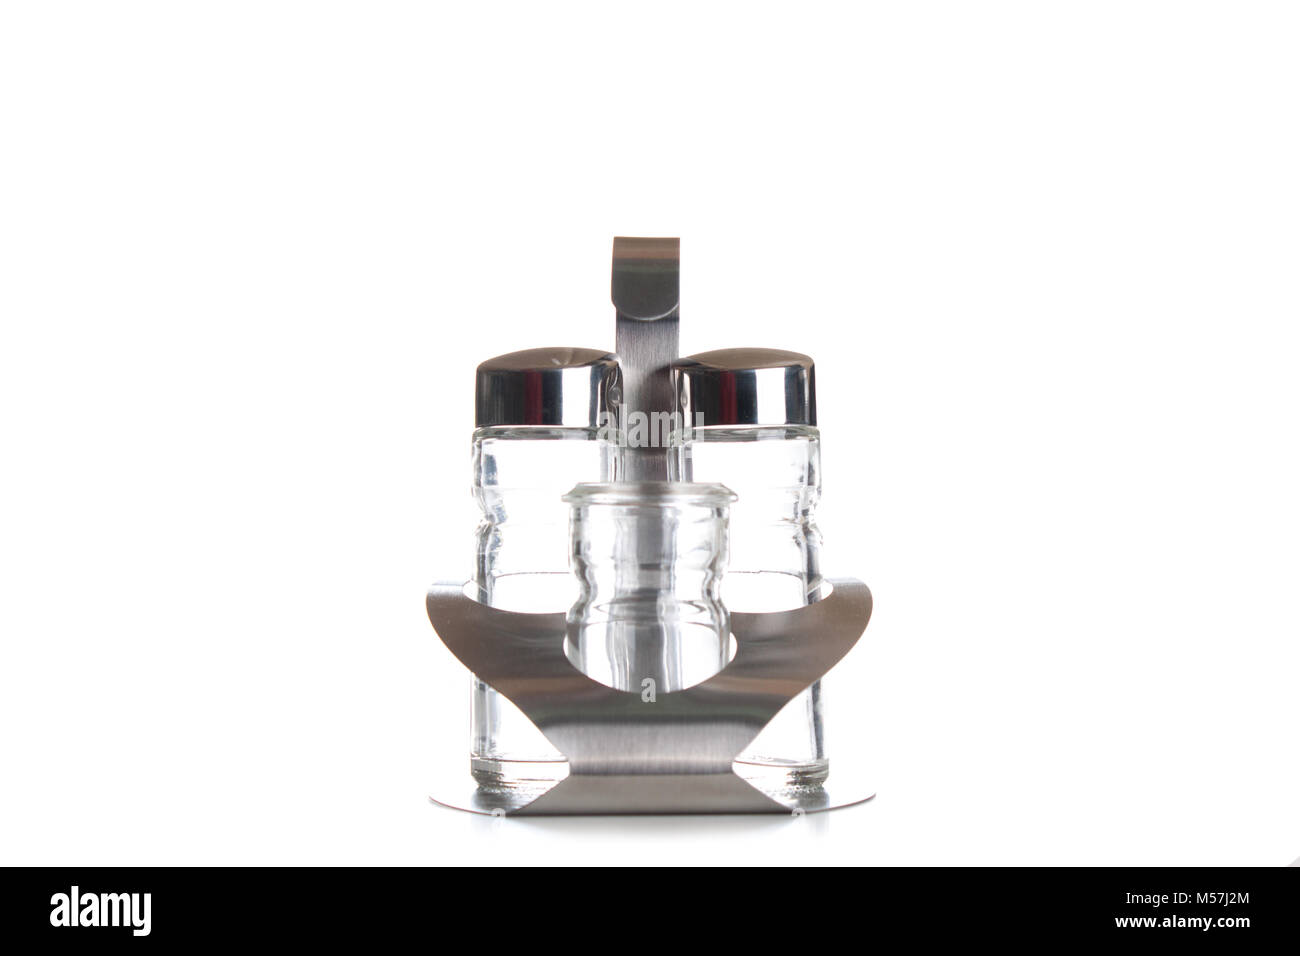 salt and pepper shaker mills isolated on white. - Stock Image